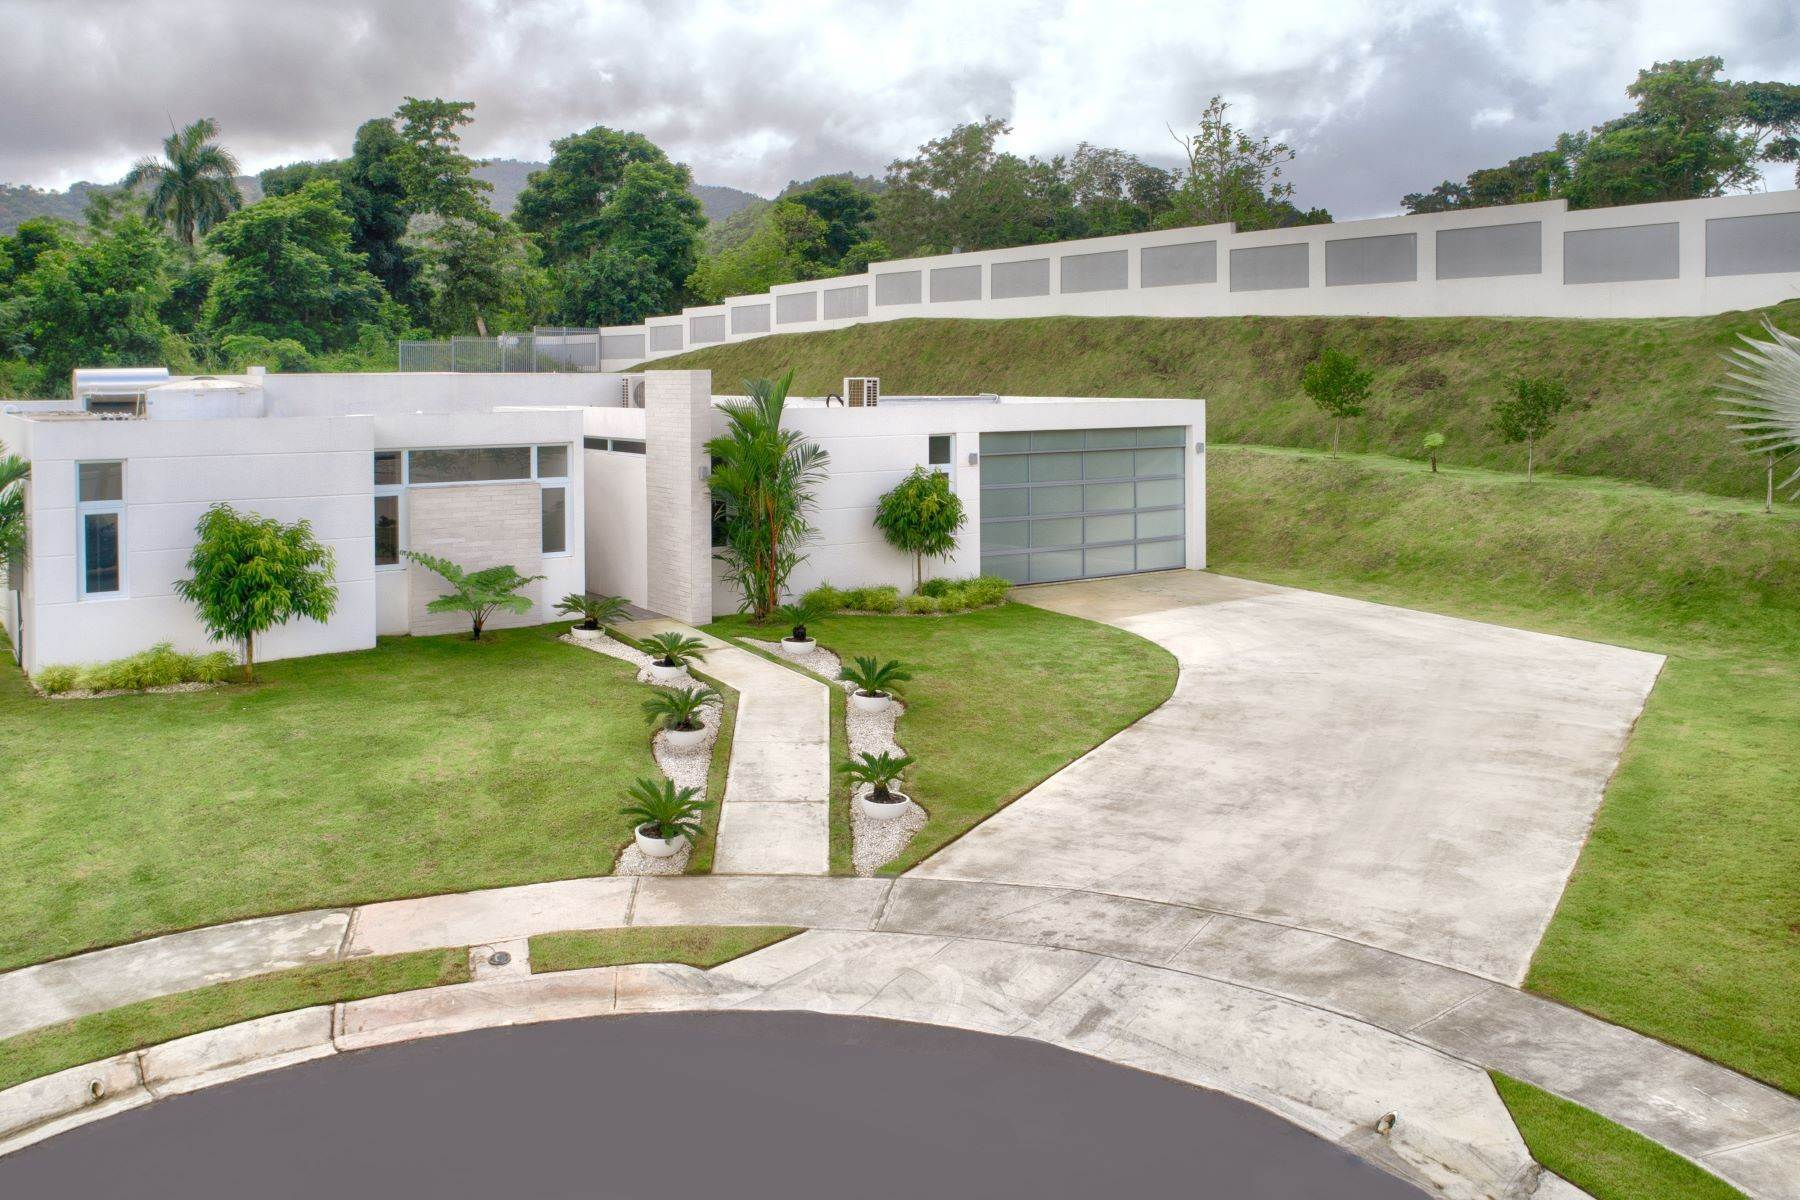 Single Family Homes for Sale at 143 Bel Air, Finca Elena Guaynabo, 00969 Puerto Rico